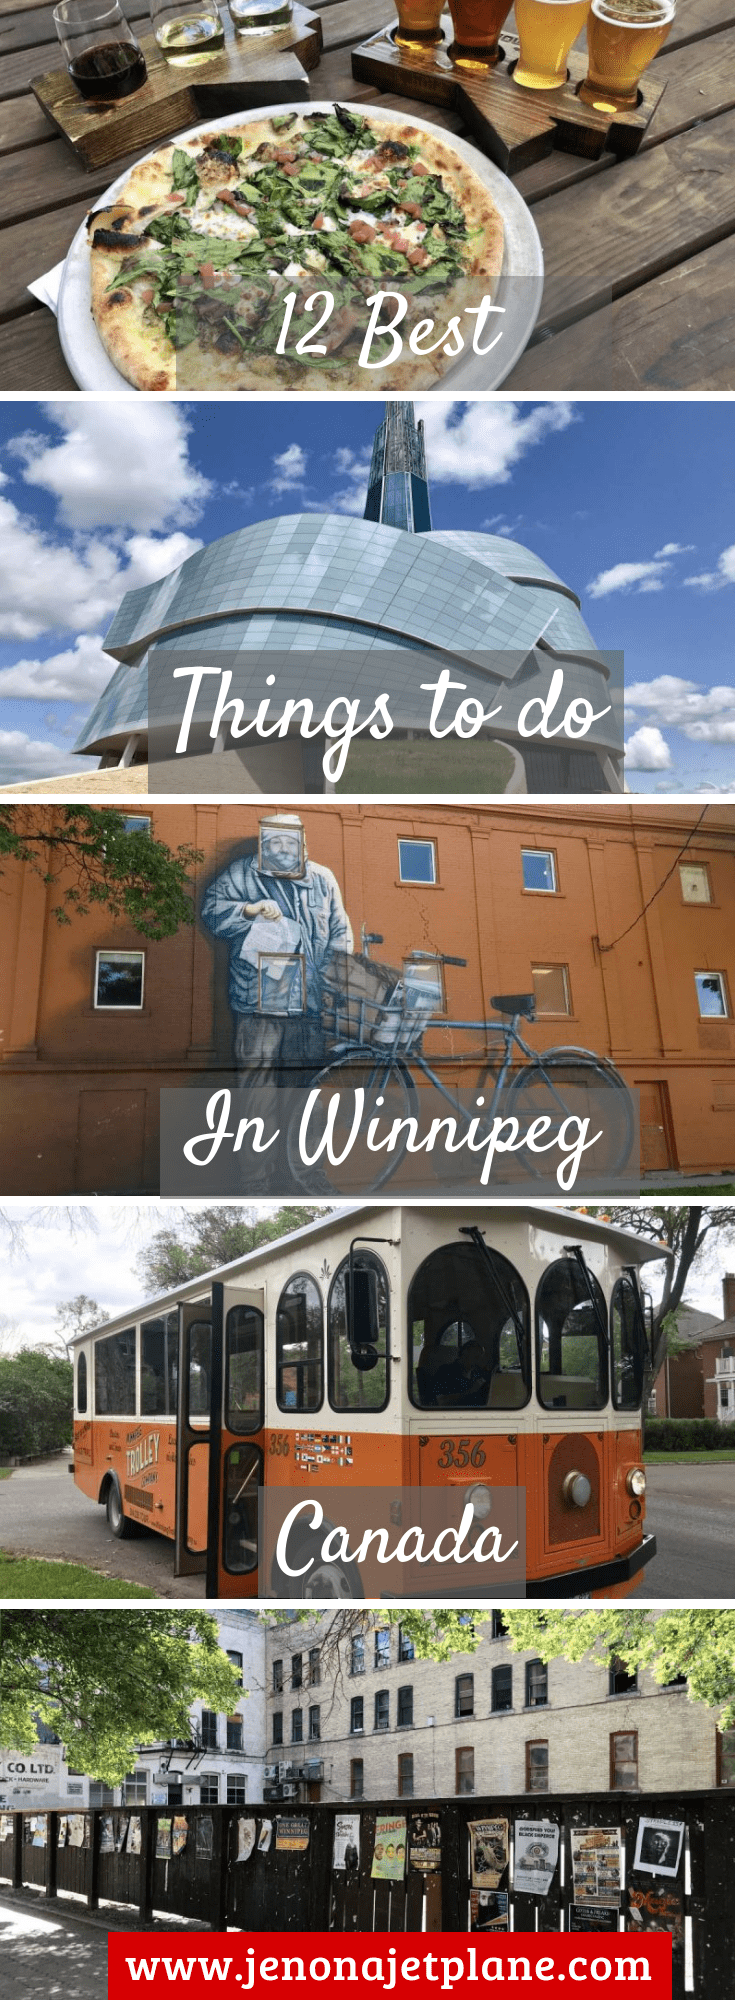 Looking for the best things to do in Winnipeg, Canada? From street art finds to the best restaurants in the city, here are 12 must-see stops for first-time visitors! #winnipegcanada #winnipegcanadathingstodoin #winnipegmanitoba #winnipeg #travelinspiration #canadatravel